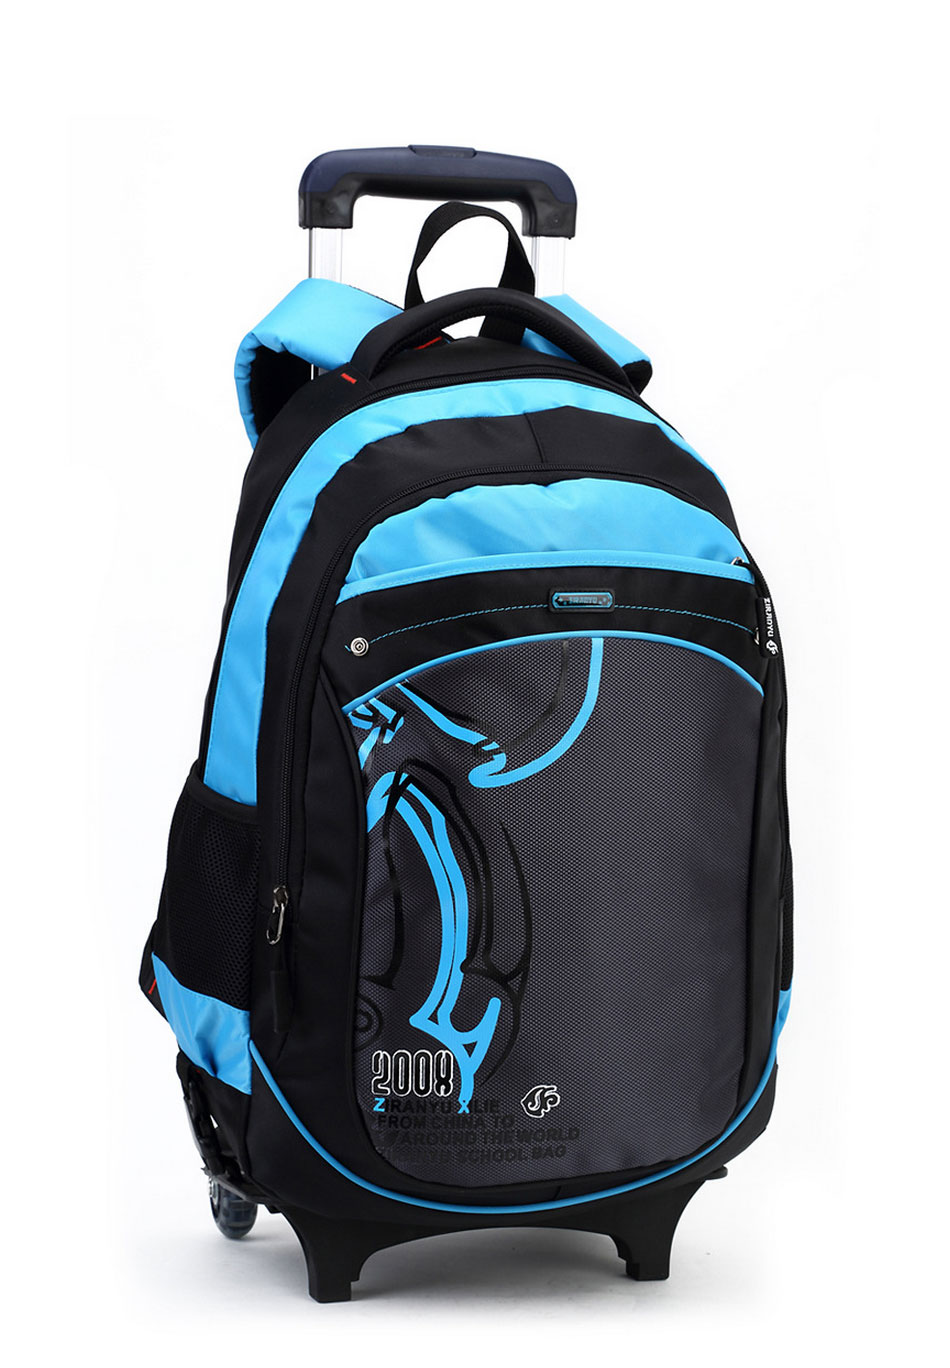 Trolley-Backpack-For-Children_06